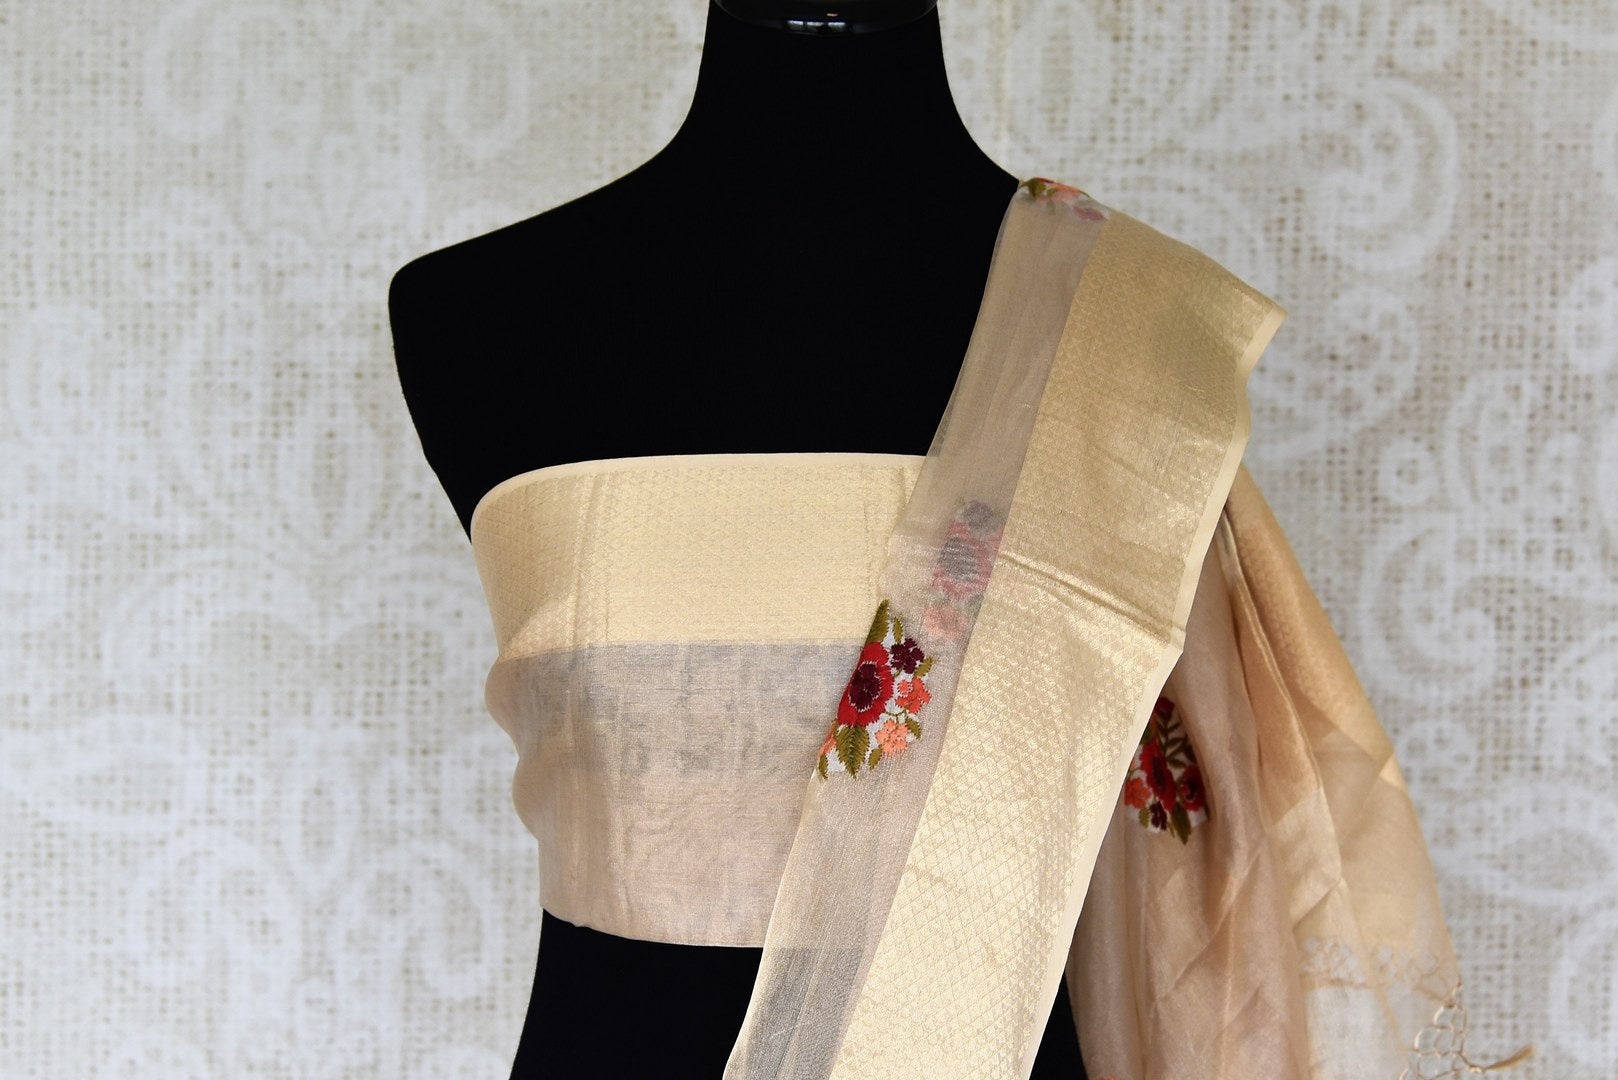 Buy cream resham embroidery tissue linen saree online in USA with zari border. Select your favorite Indian handloom saris, pure silk sarees, wedding sarees from Pure Elegance Indian fashion store in USA for weddings and special occasions.-blouse pallu